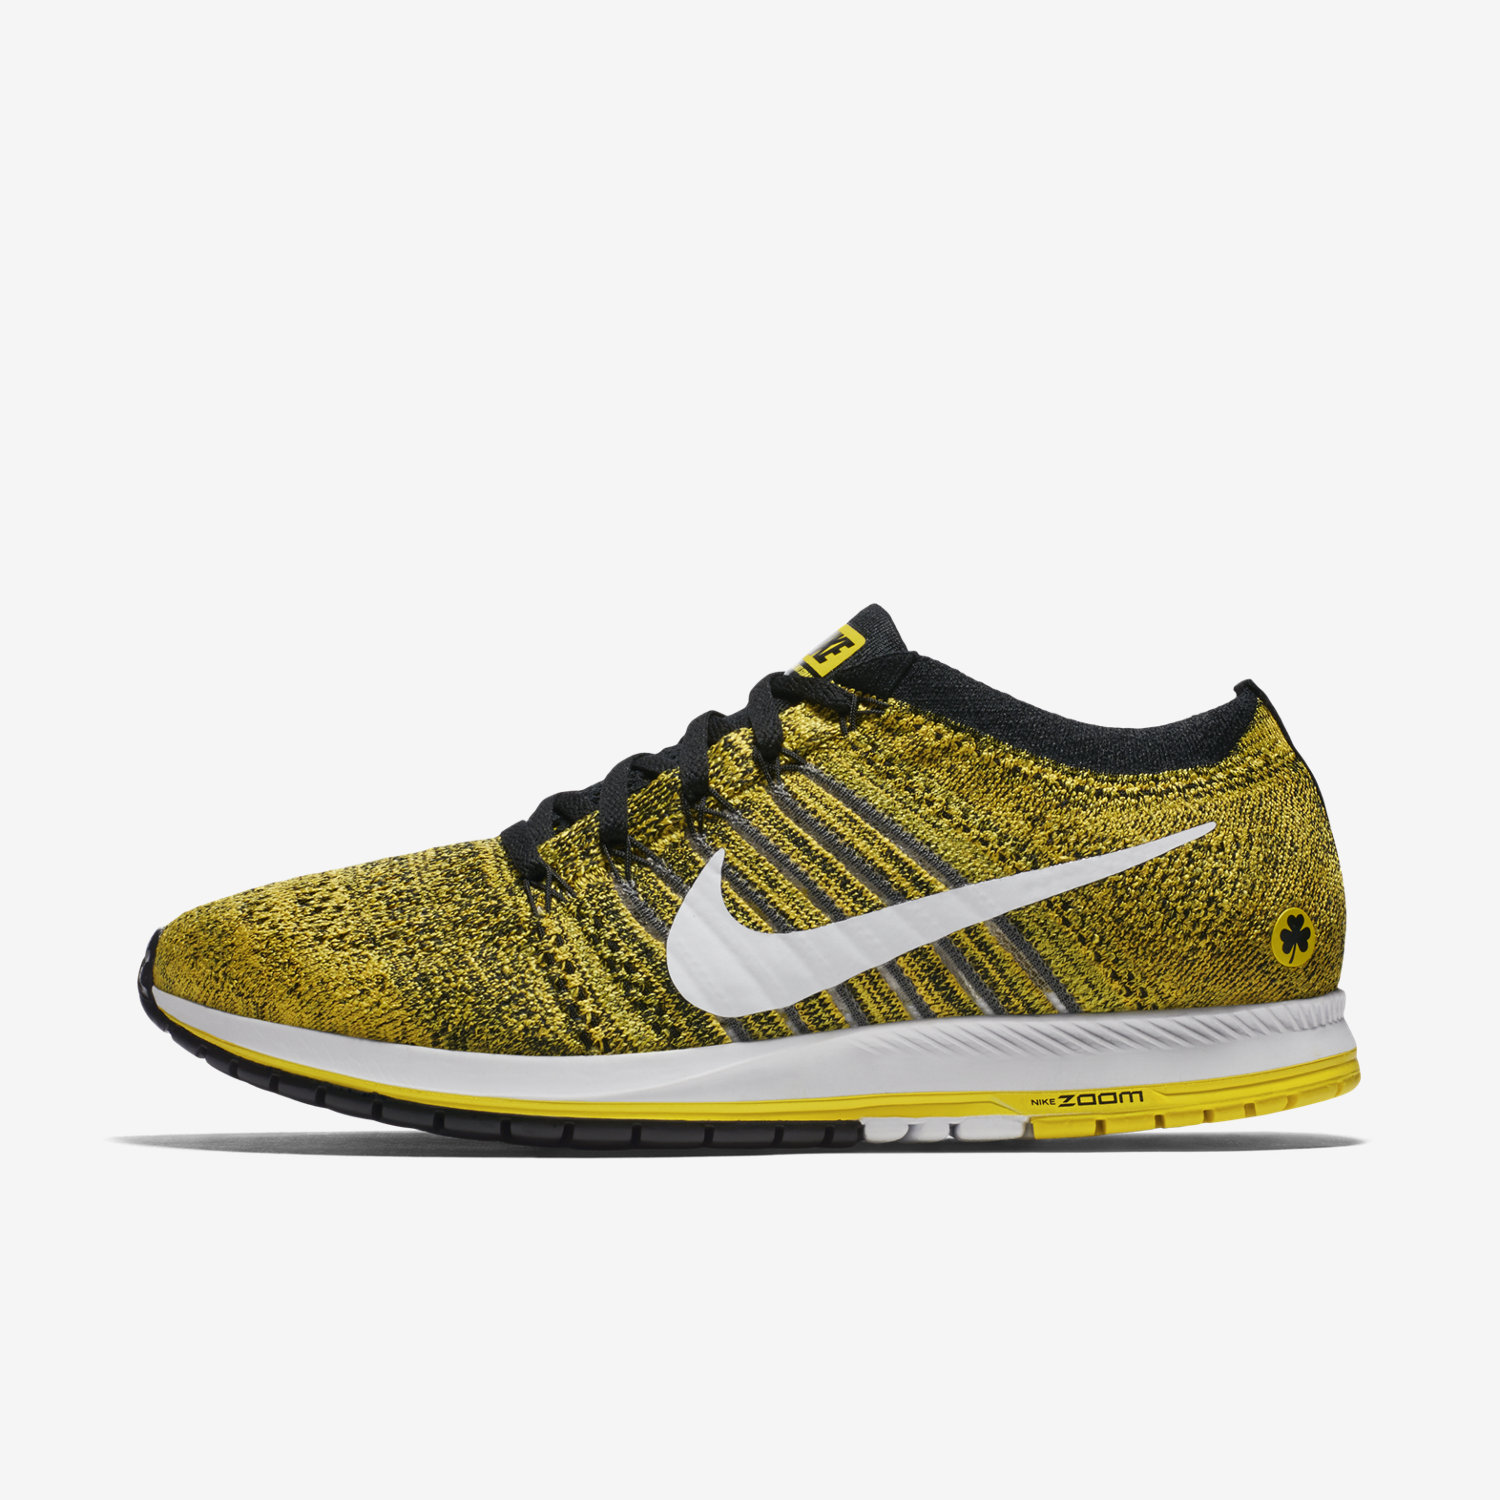 Nike Flyknit Streak BOSTON LTD Edition Unisex Running Shoes - Alton ... 9bbad69b43